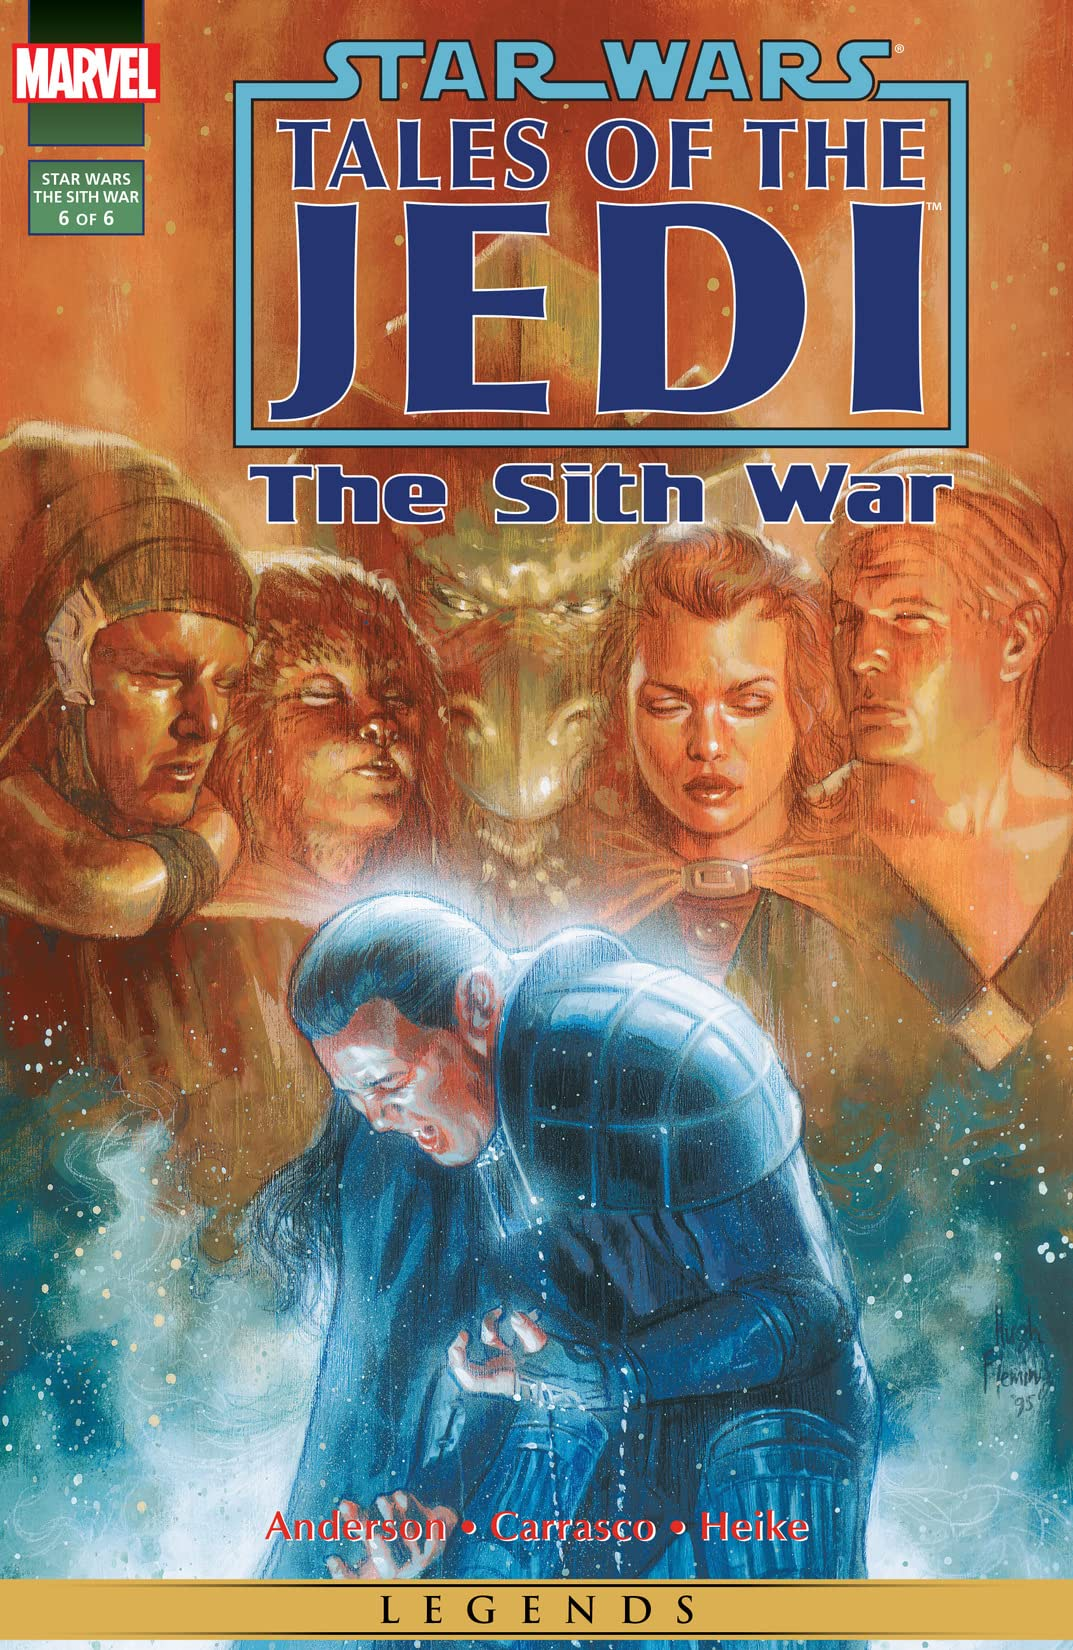 Star Wars: Tales of the Jedi - The Sith War (1995-1996) #6 (of 6)